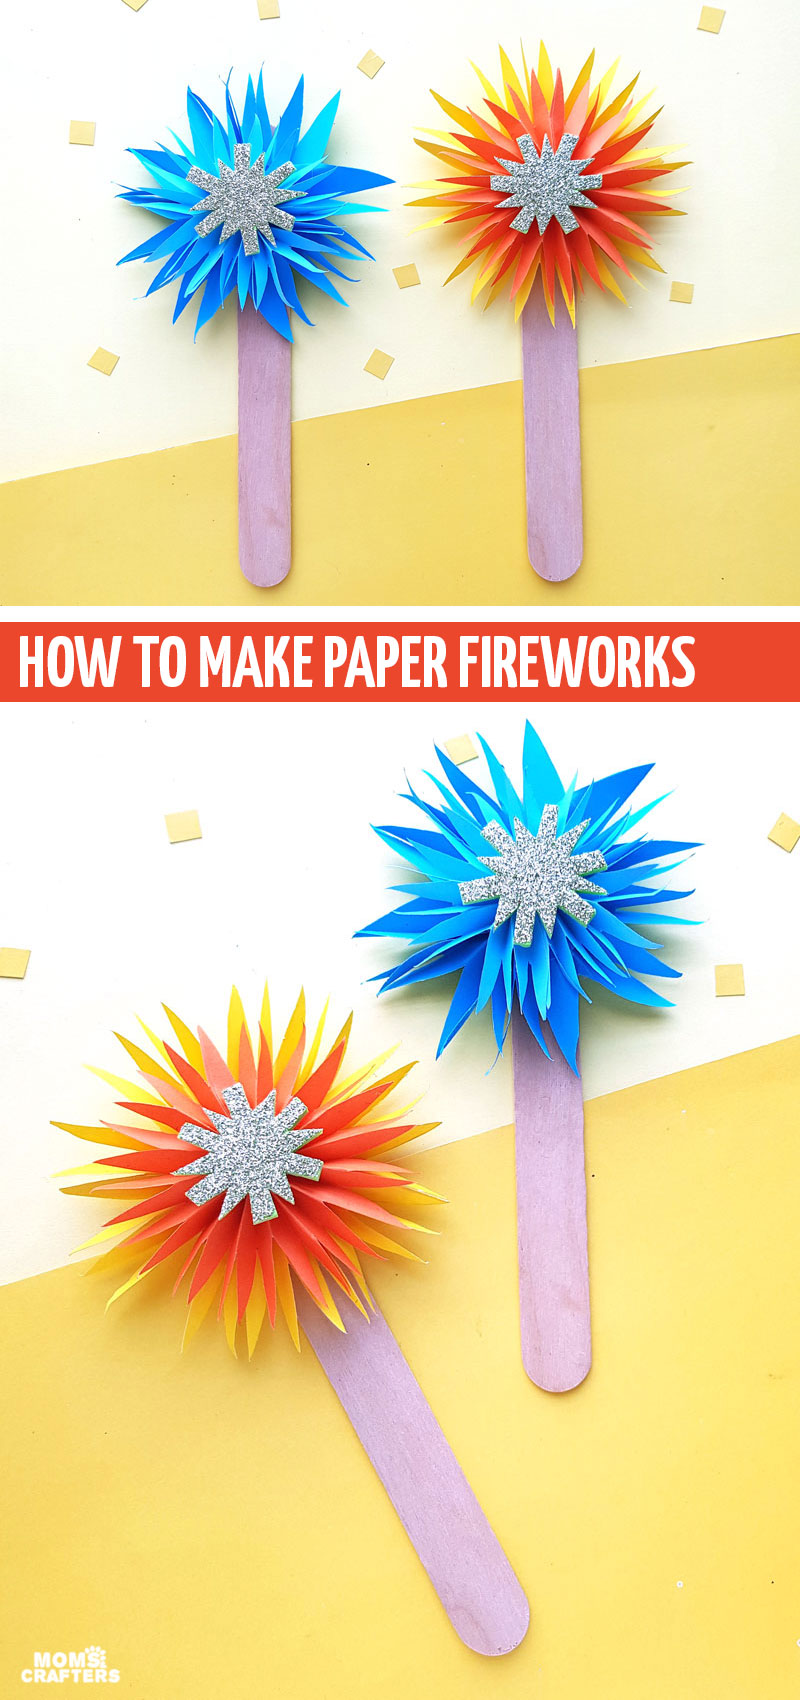 Click to make these fun paper fireworks - a fun New Year's craft for kids! Make a bunch to use as a countdown to the new year on New Year's Eve. Make a few to decorate for the 4th of July. The possibilities are endless!